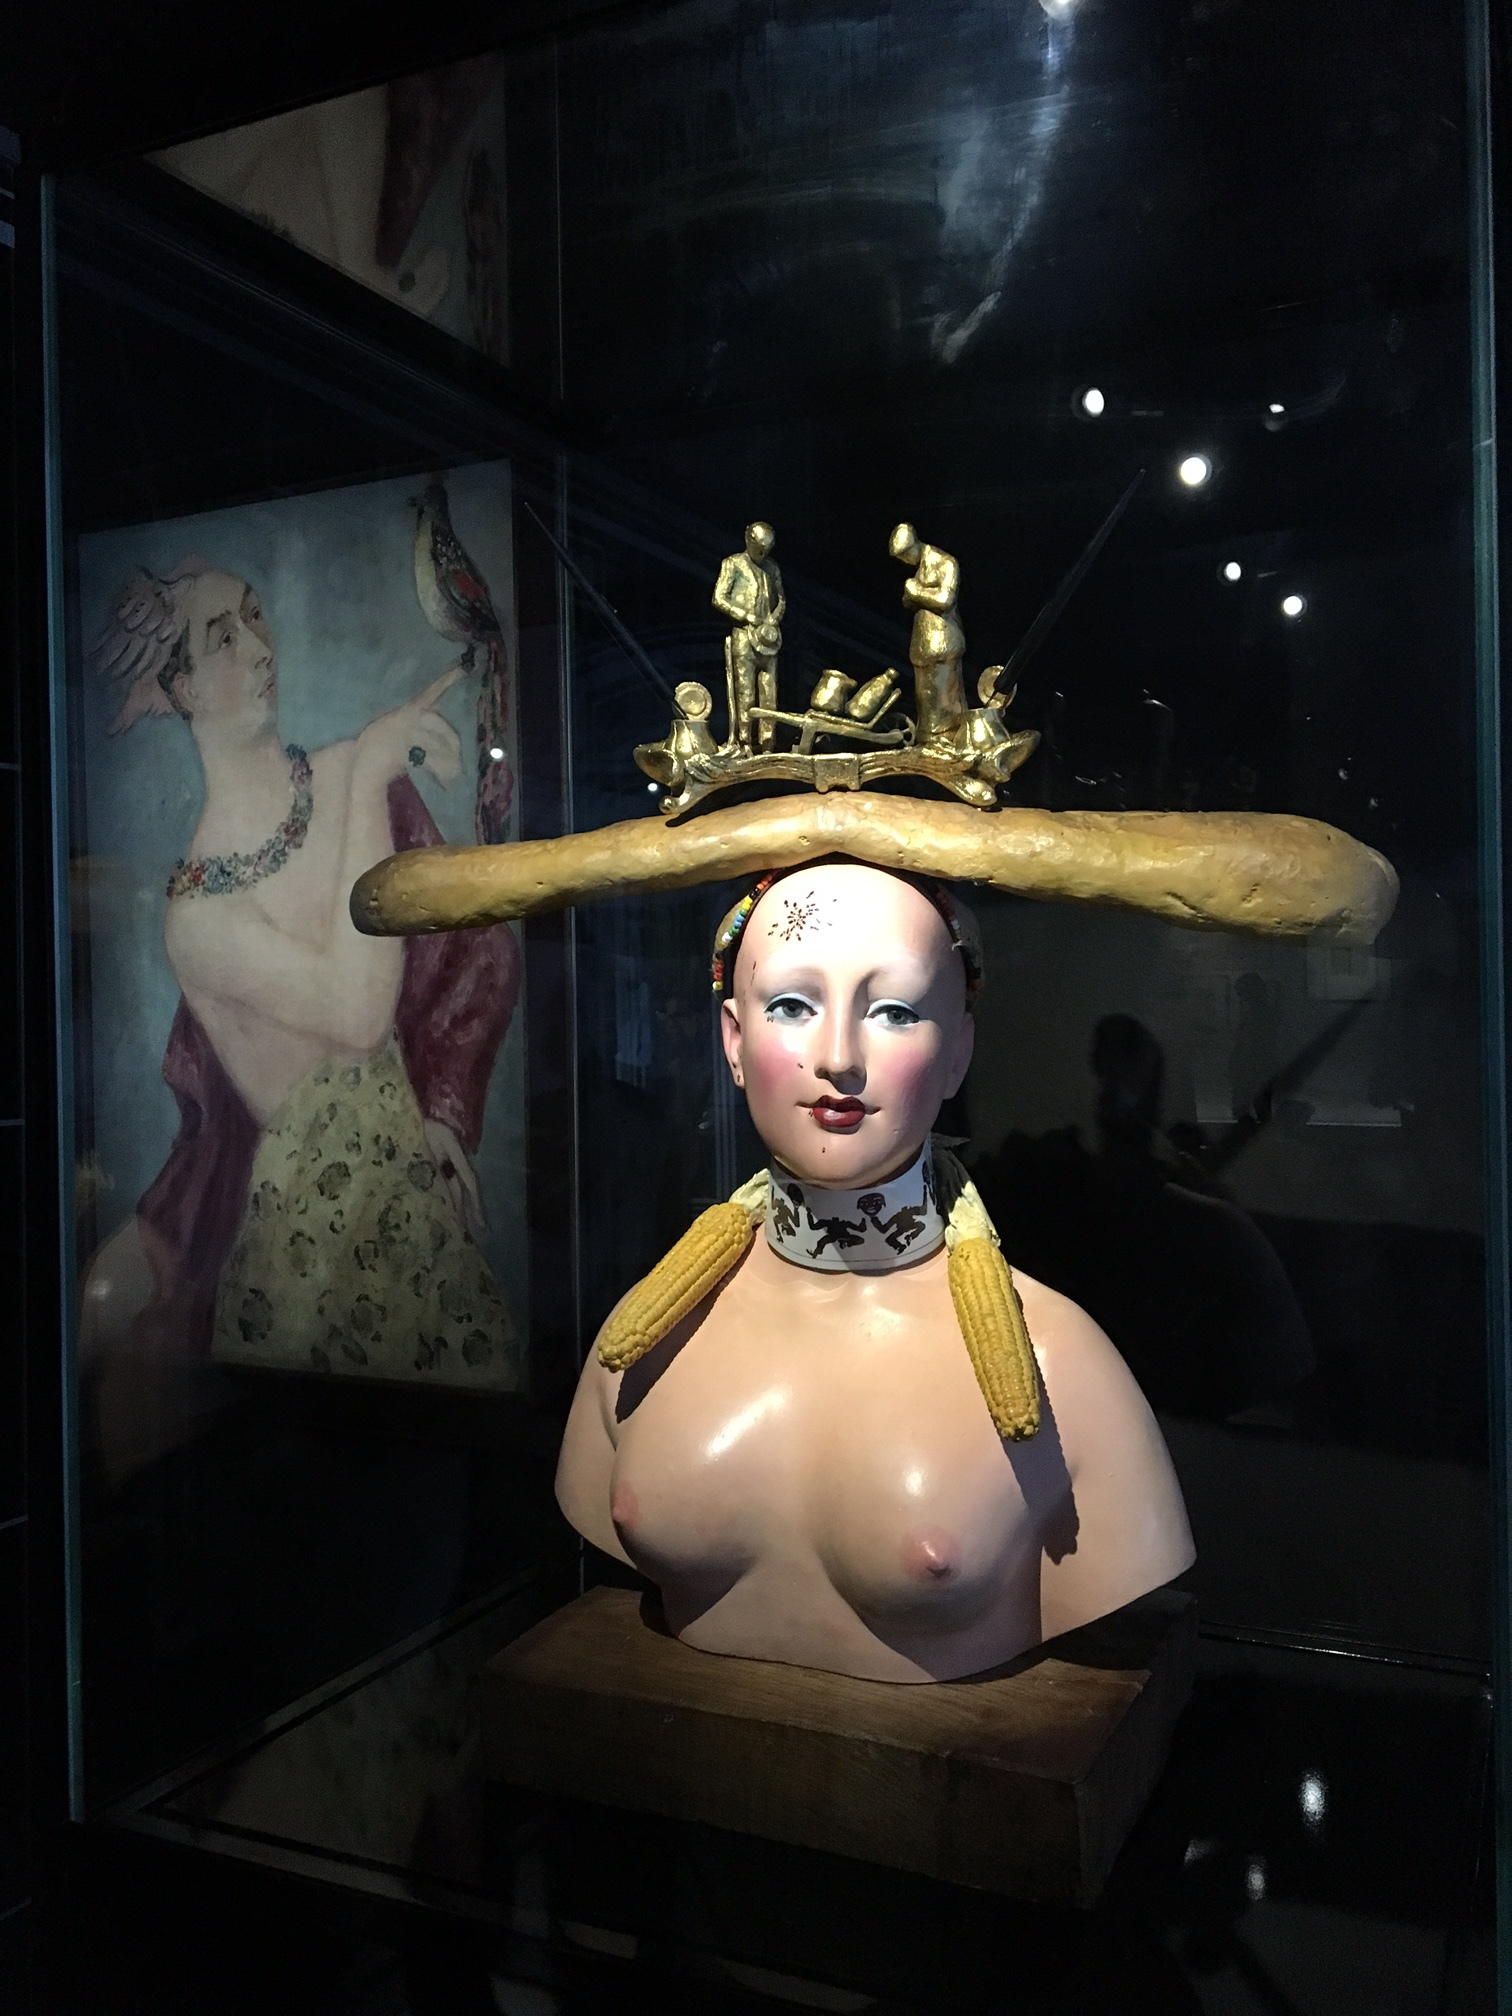 Christian Dior's surrealistic hats were perhaps inspired by his friend Salvador Dali's sculptures like Retrospective Bust of a Woman featuring an inkwell and a baguette balancing on her head.